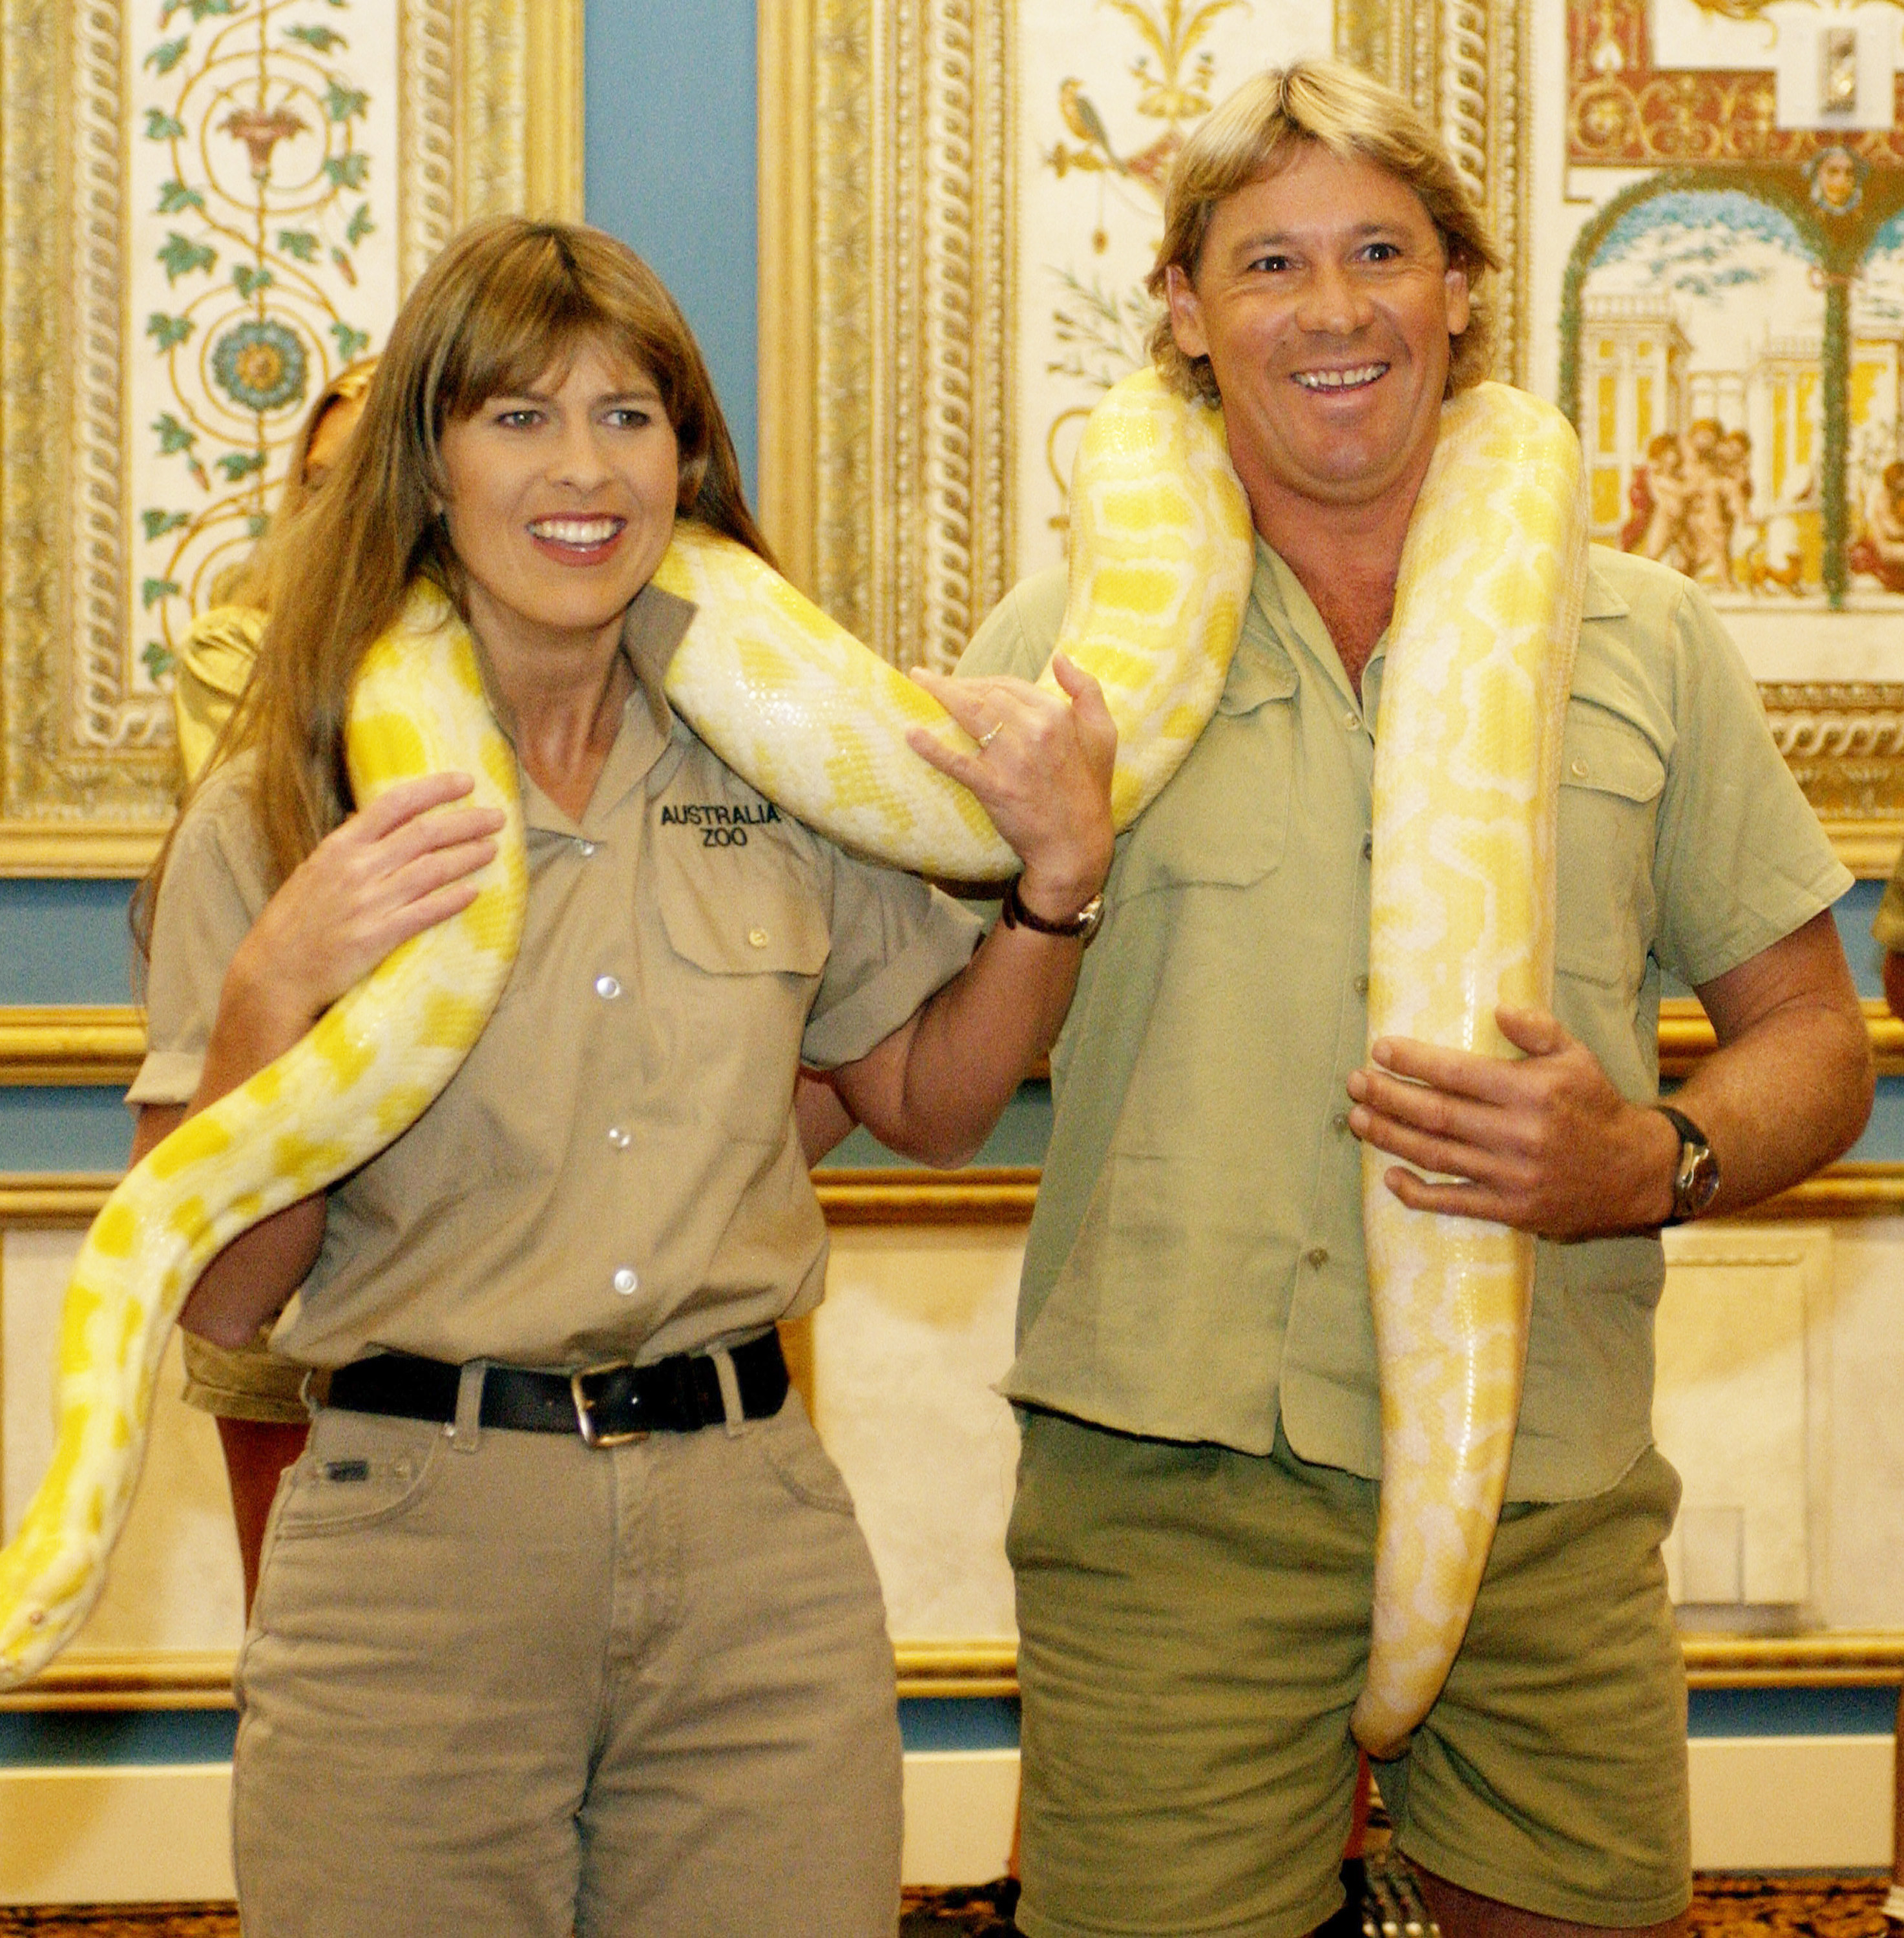 """Terri Irwin and Steve Irwin hold a giant snake and talk about their film """"Crocodile Hunter: Collision Course"""" at 2002 ShoWest in Las Vegas"""